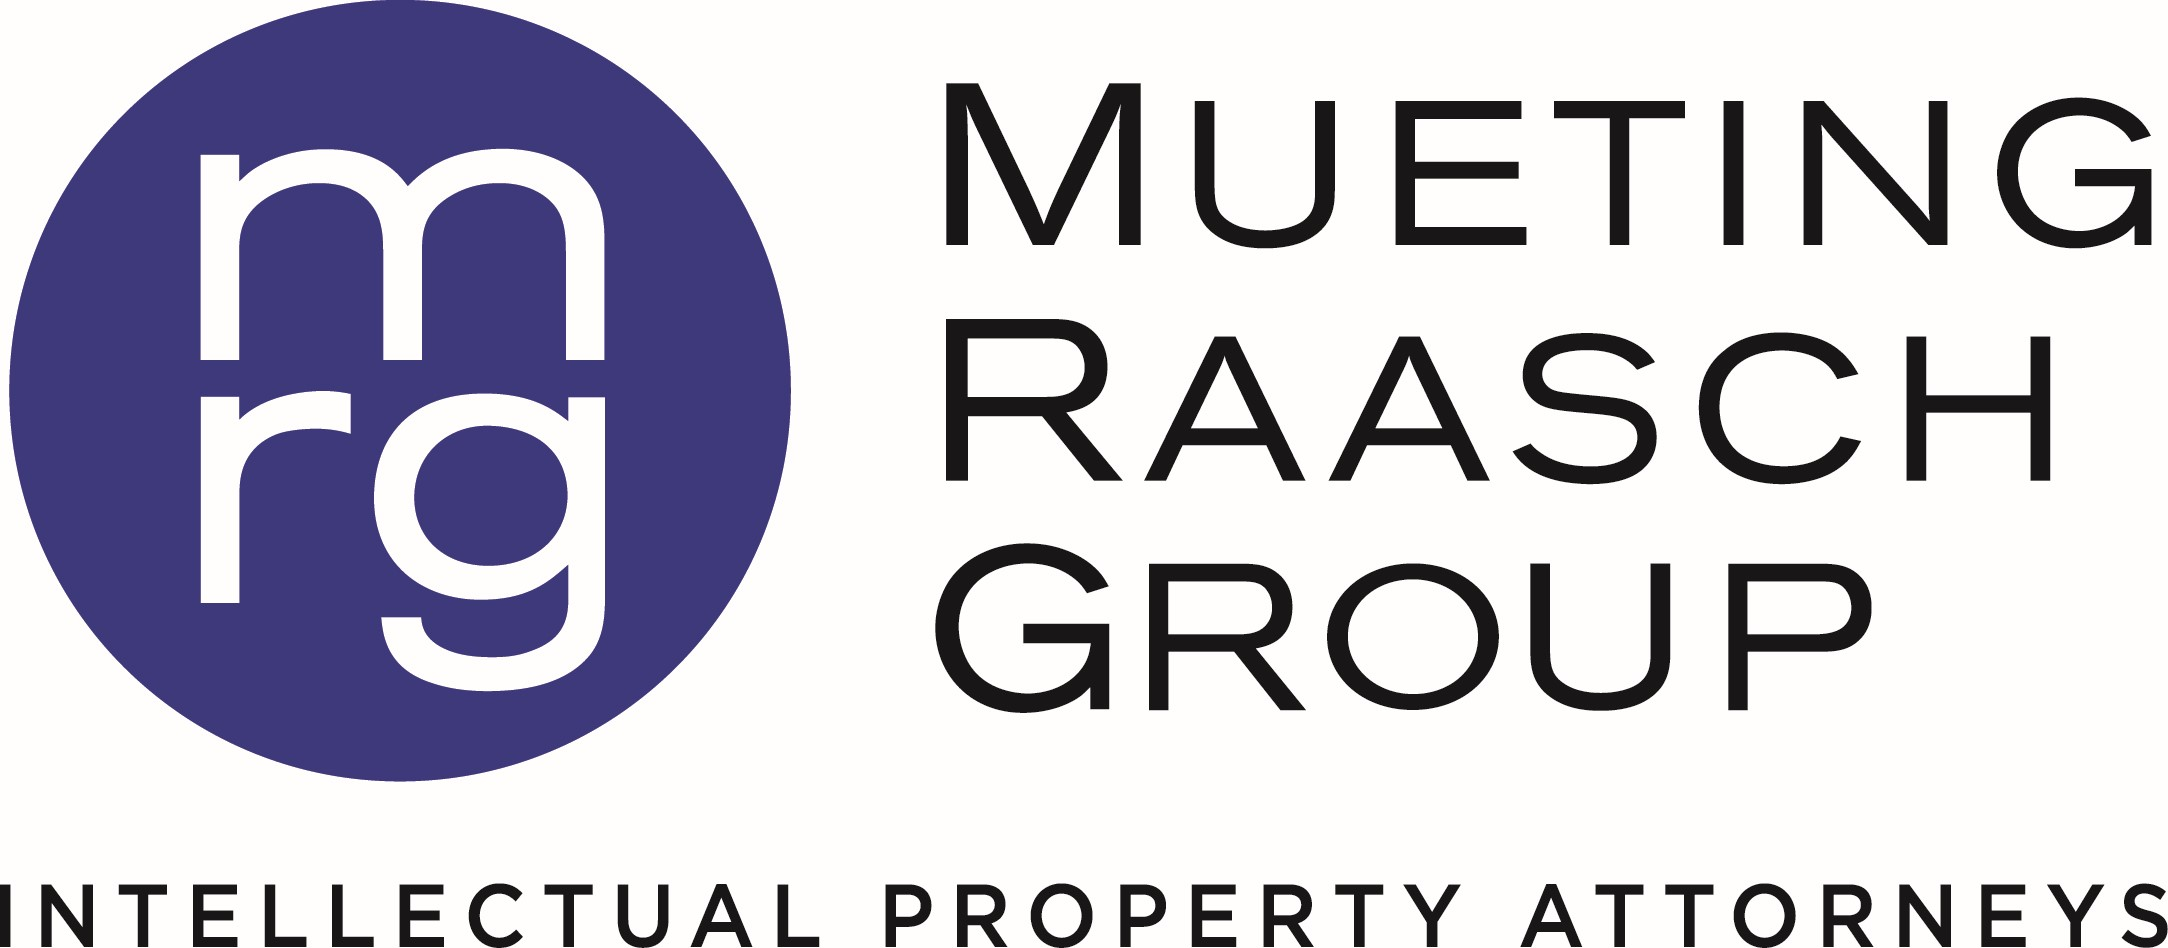 Mueting Raasch Group Logo Vertical Blue